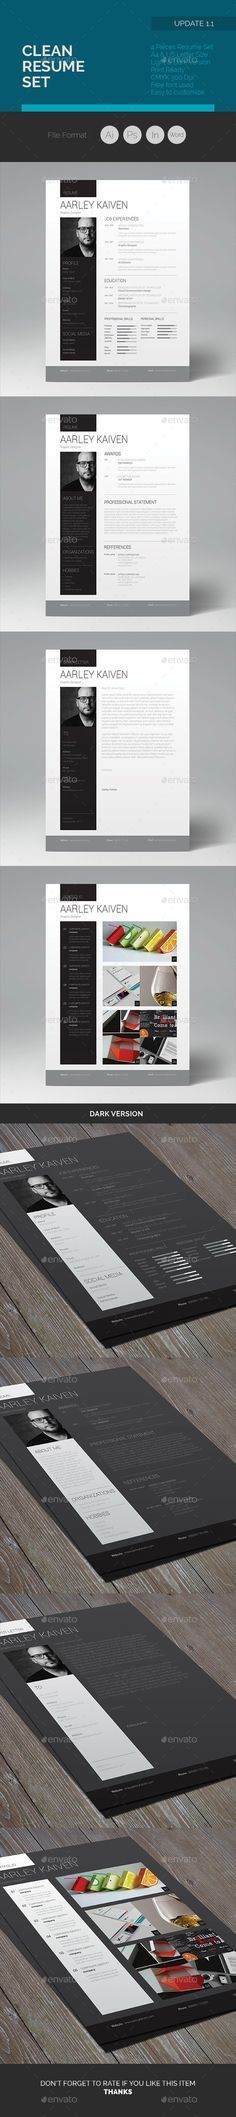 Clean Resume Set - Resumes Stationery